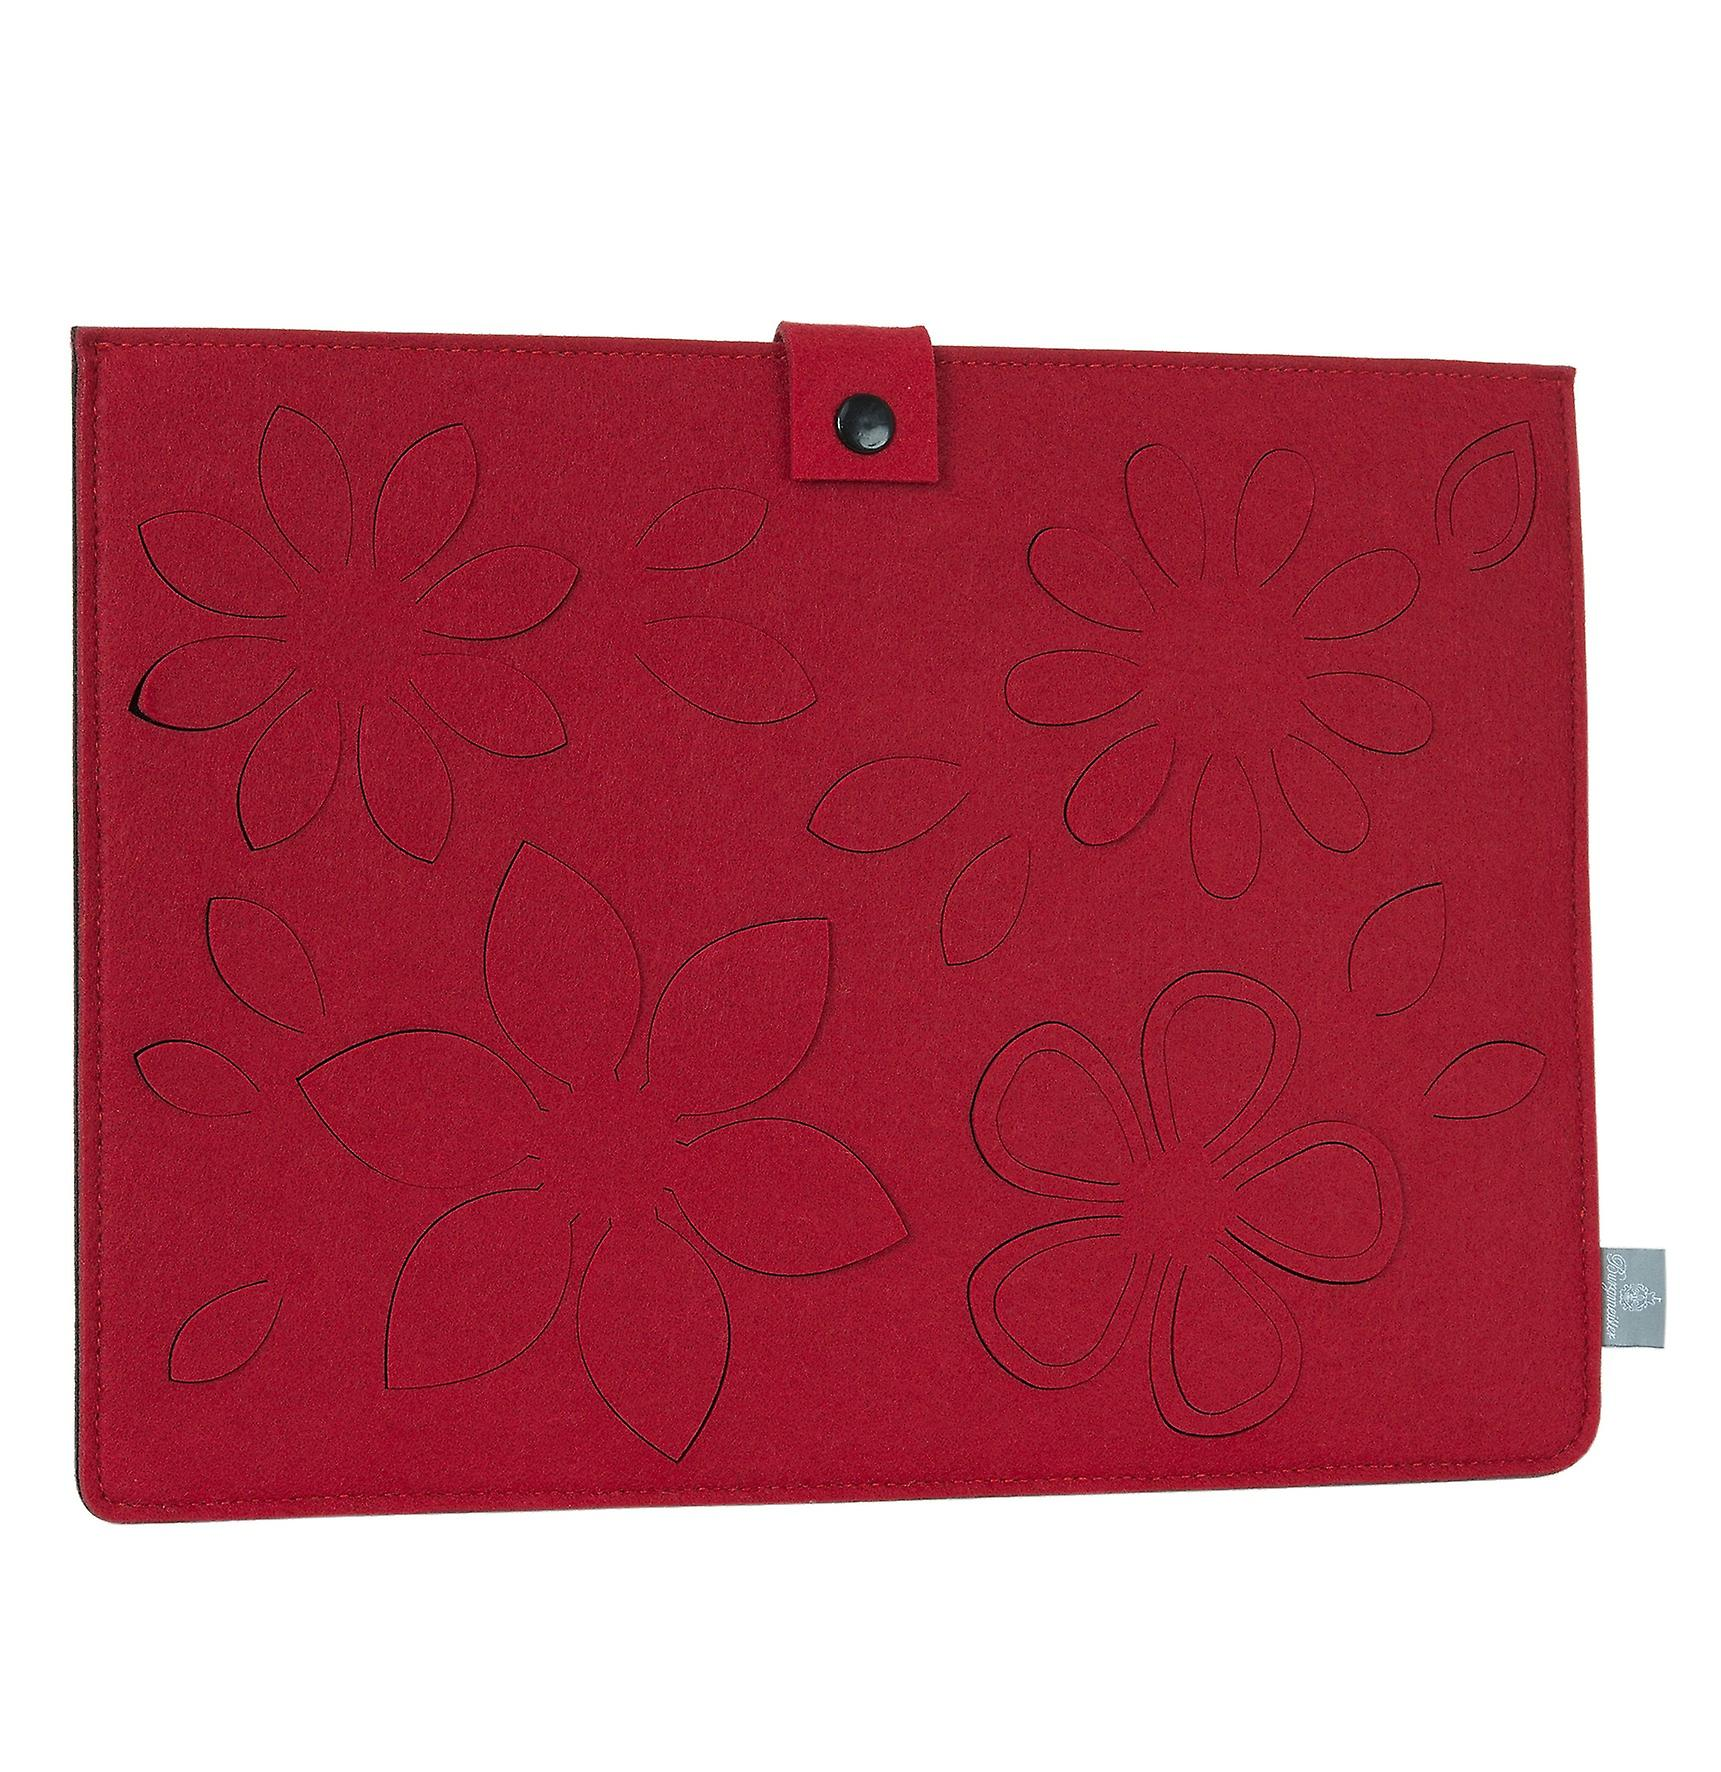 Burgmeister ladies/gents netbook/notebook cover felt, TBM3017-164